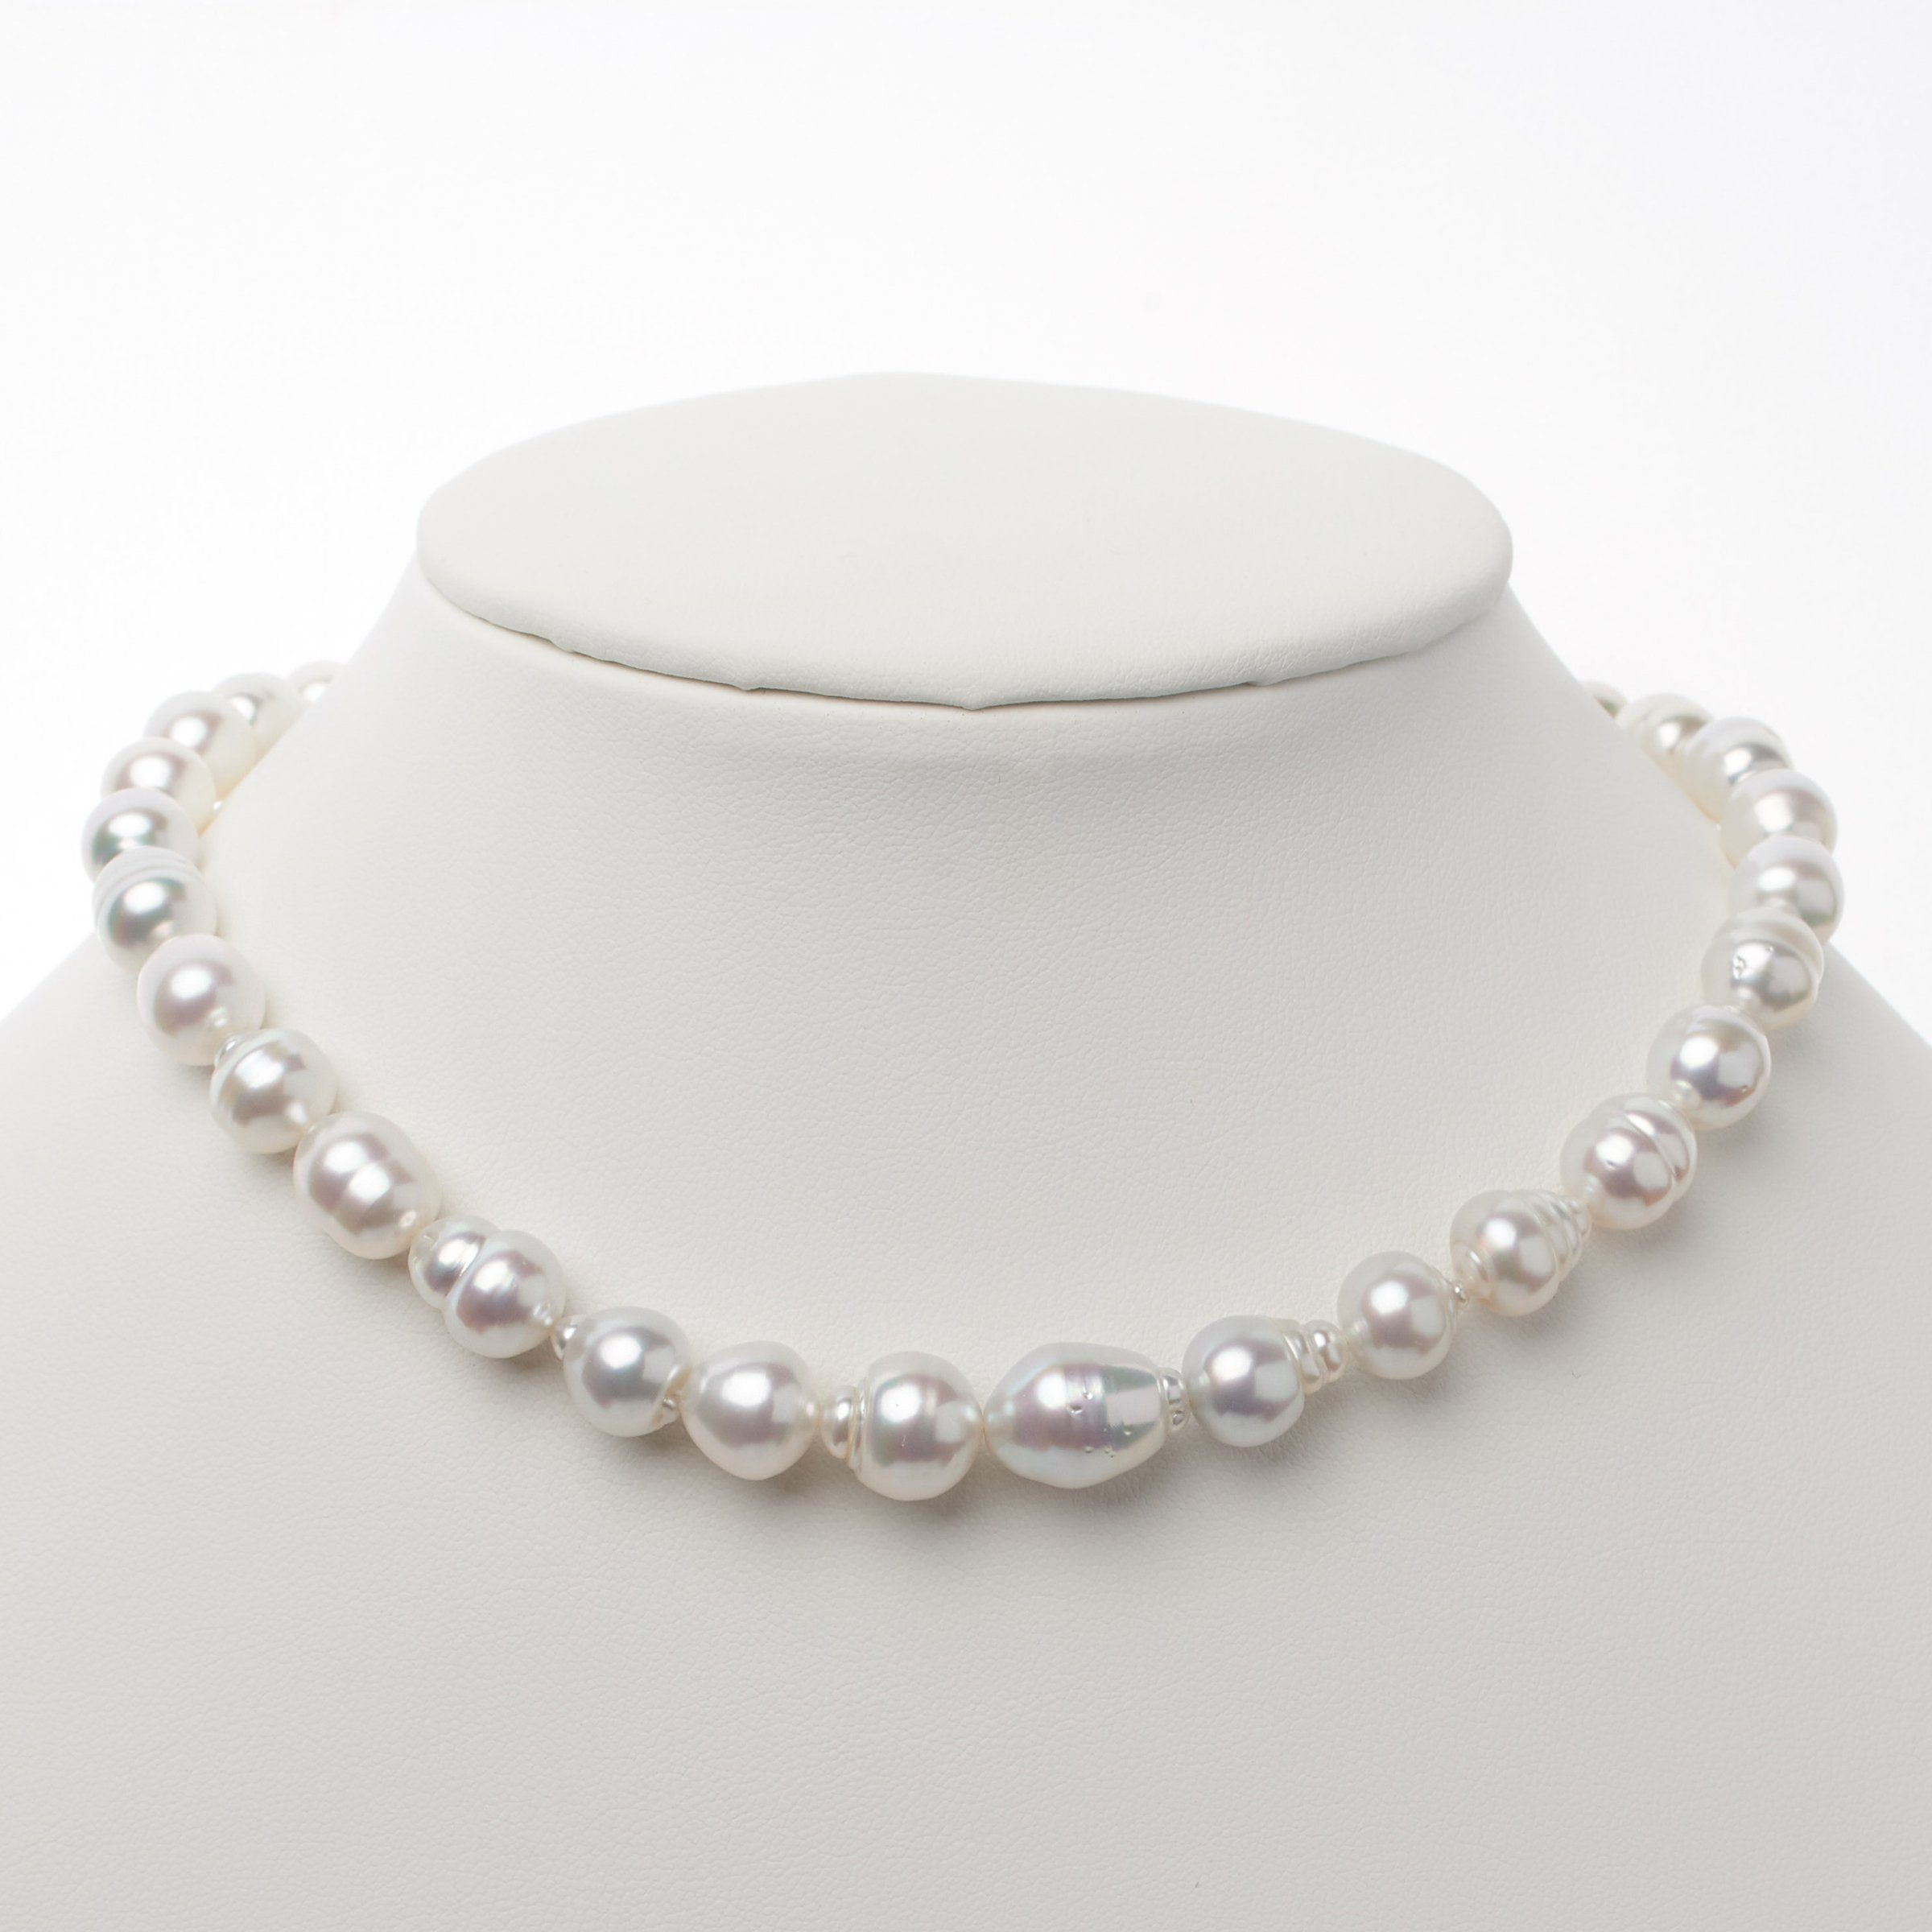 8.0-11.5 mm AA+/AAA White South Sea Baroque Necklace